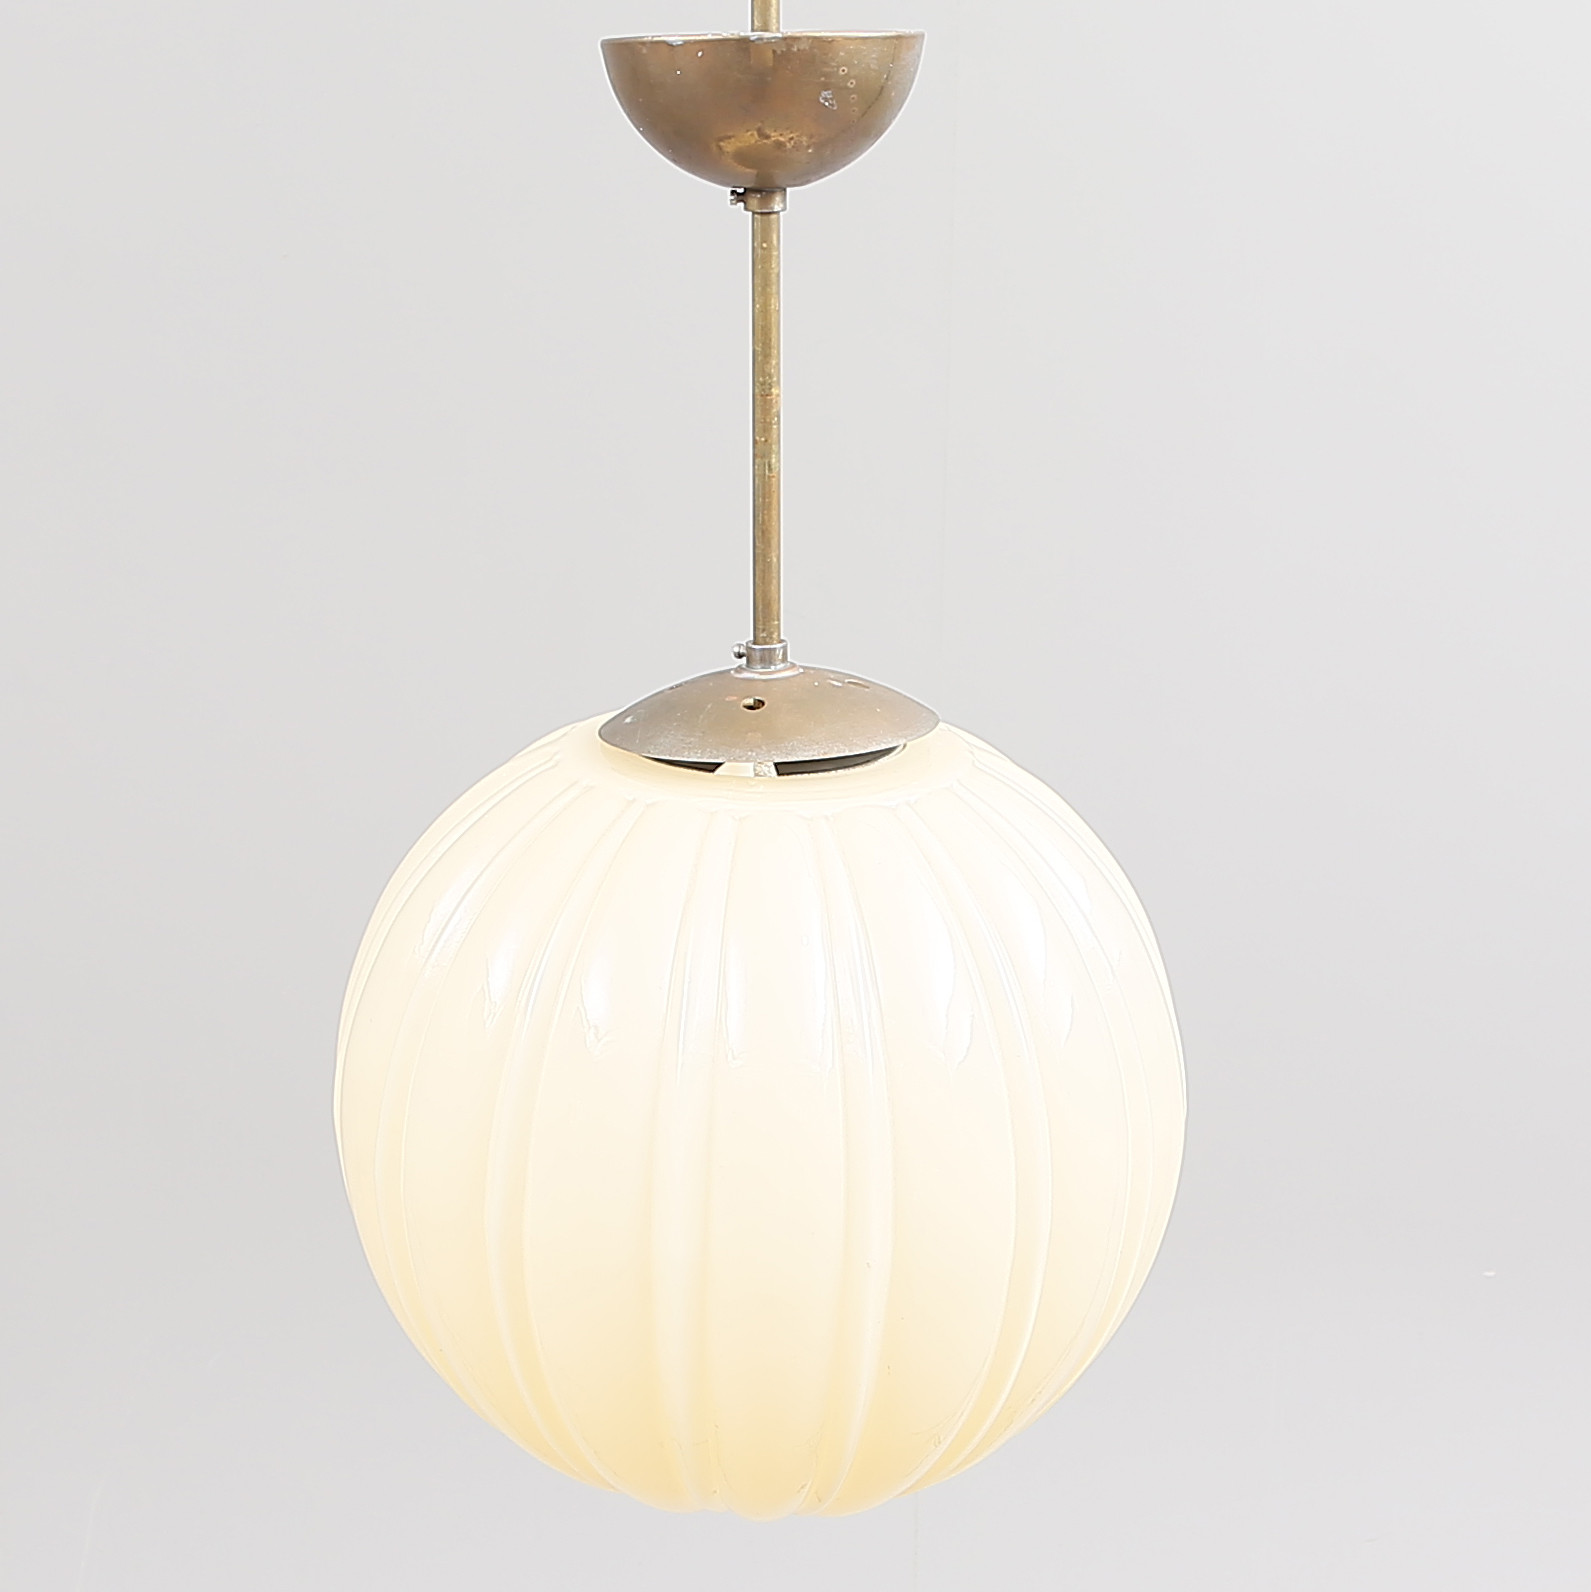 Ceiling Lamp Globe Lamp Brass Glass Ca 1940 1950s Lighting Lamps Ceiling Lights Auctionet